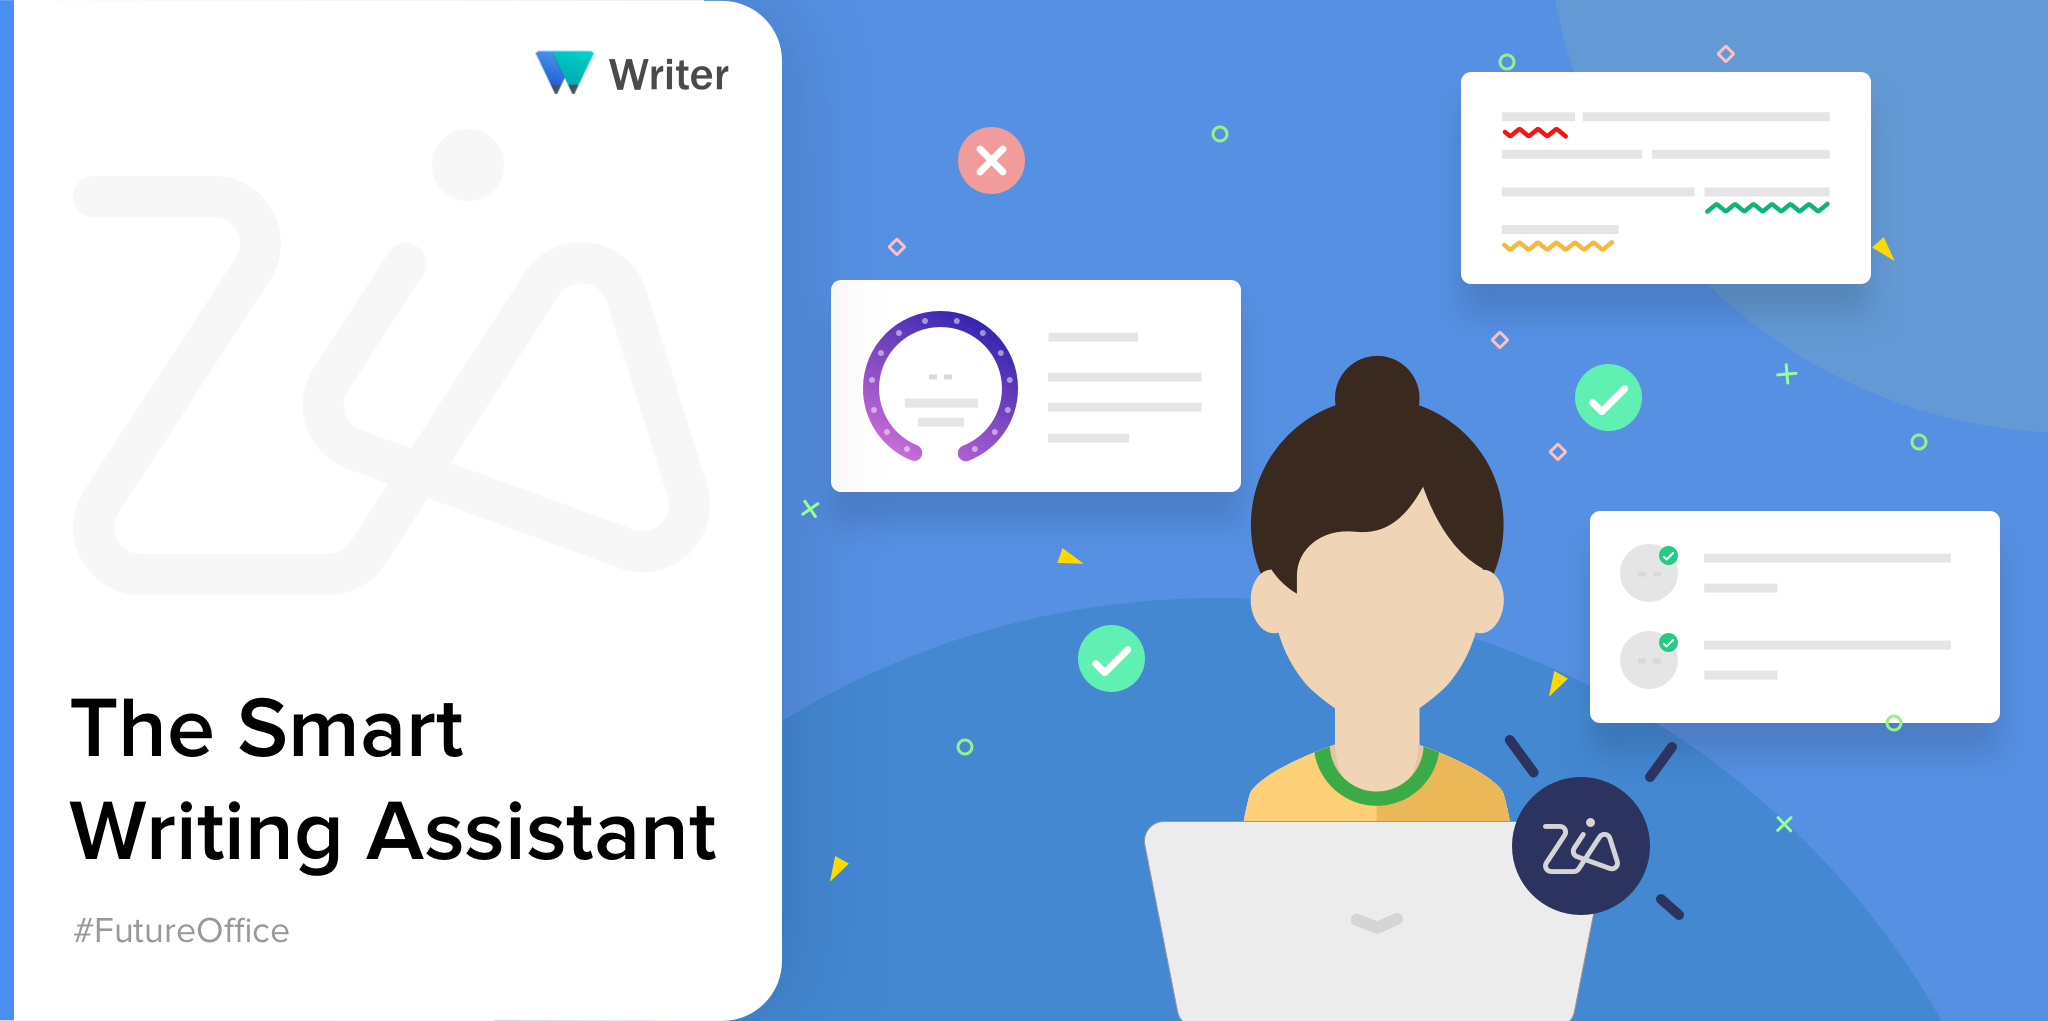 Introducing Zia in Writer: The smart writing assistant trained to help you write better.